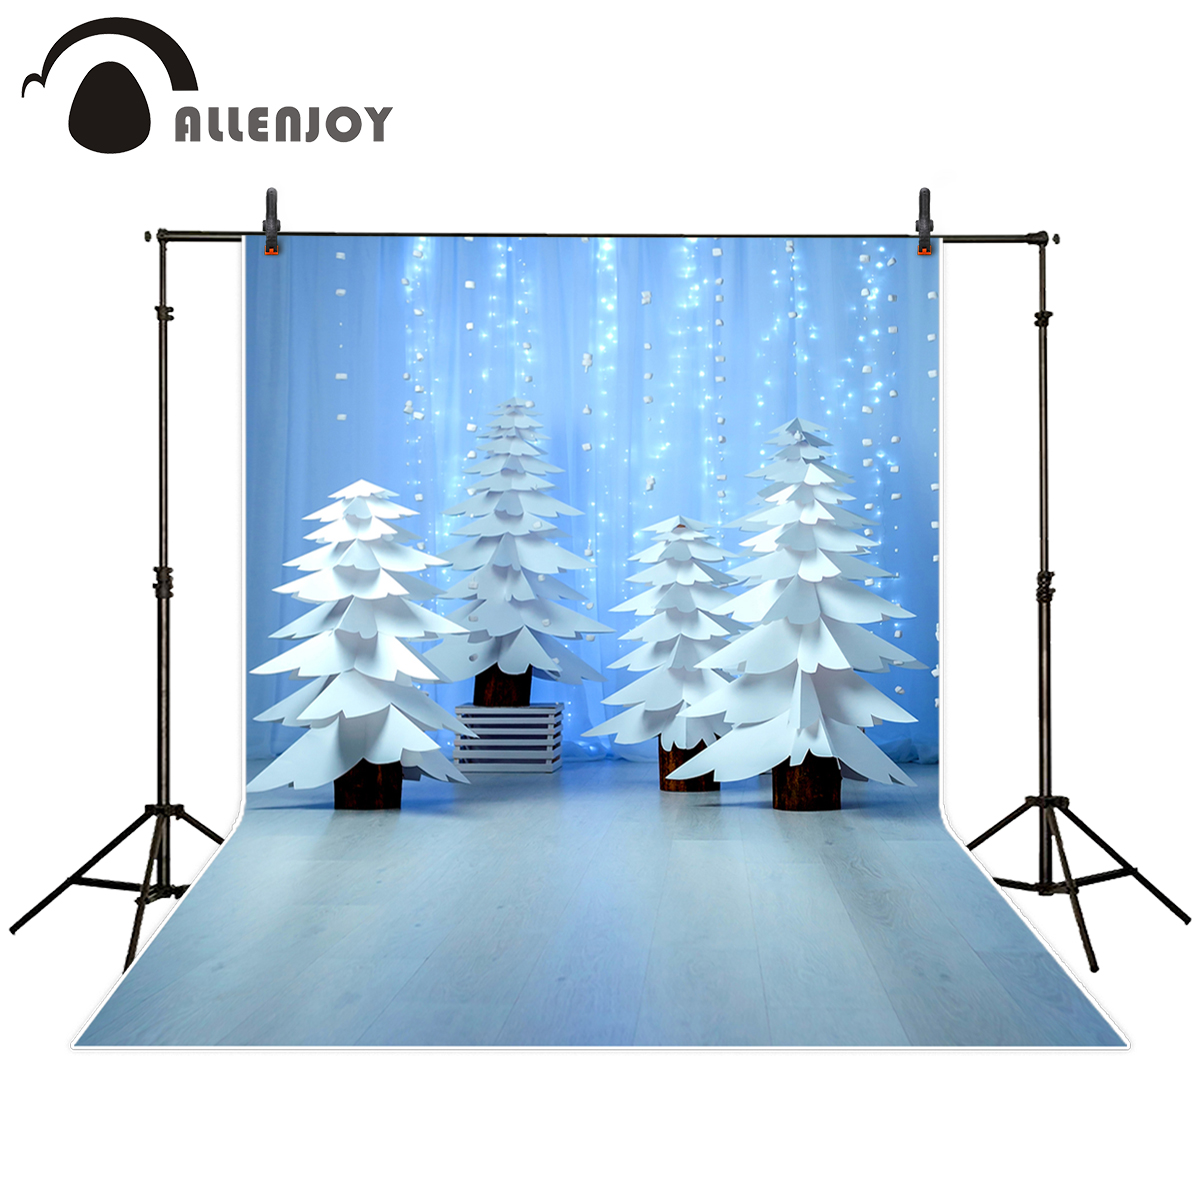 Allenjoy photography background winter tree Christmas glitter wedding backdrop photo prop photo studio photocall customize allenjoy photography backdrop flower door wedding children painting colorful background photo studio photocall photo shoot